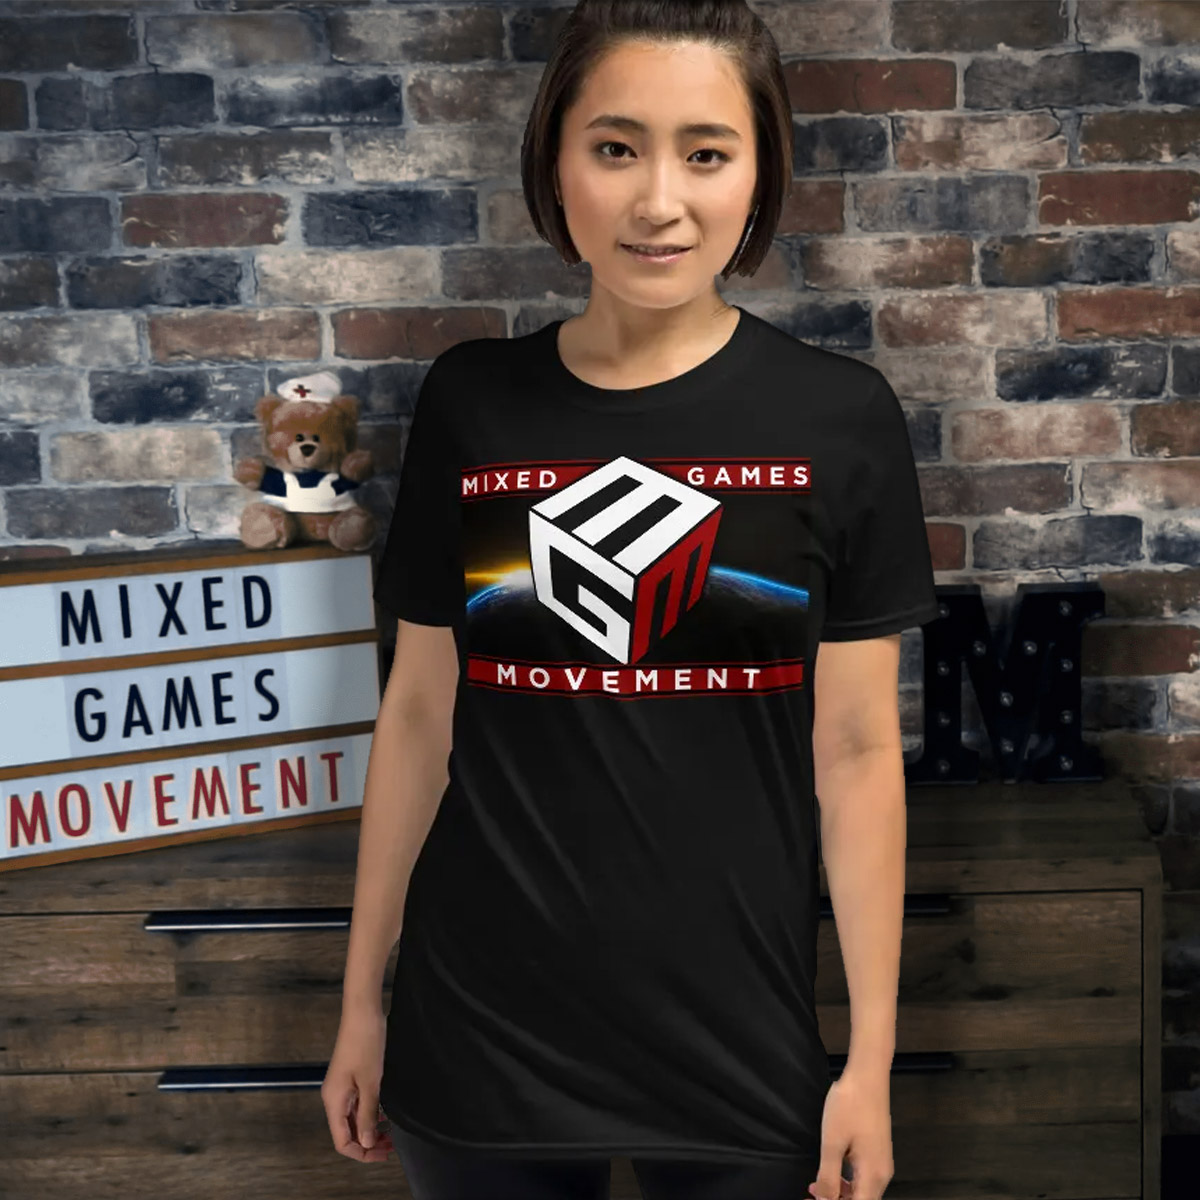 Mixed Games Movement T-Shirt - Female Feature